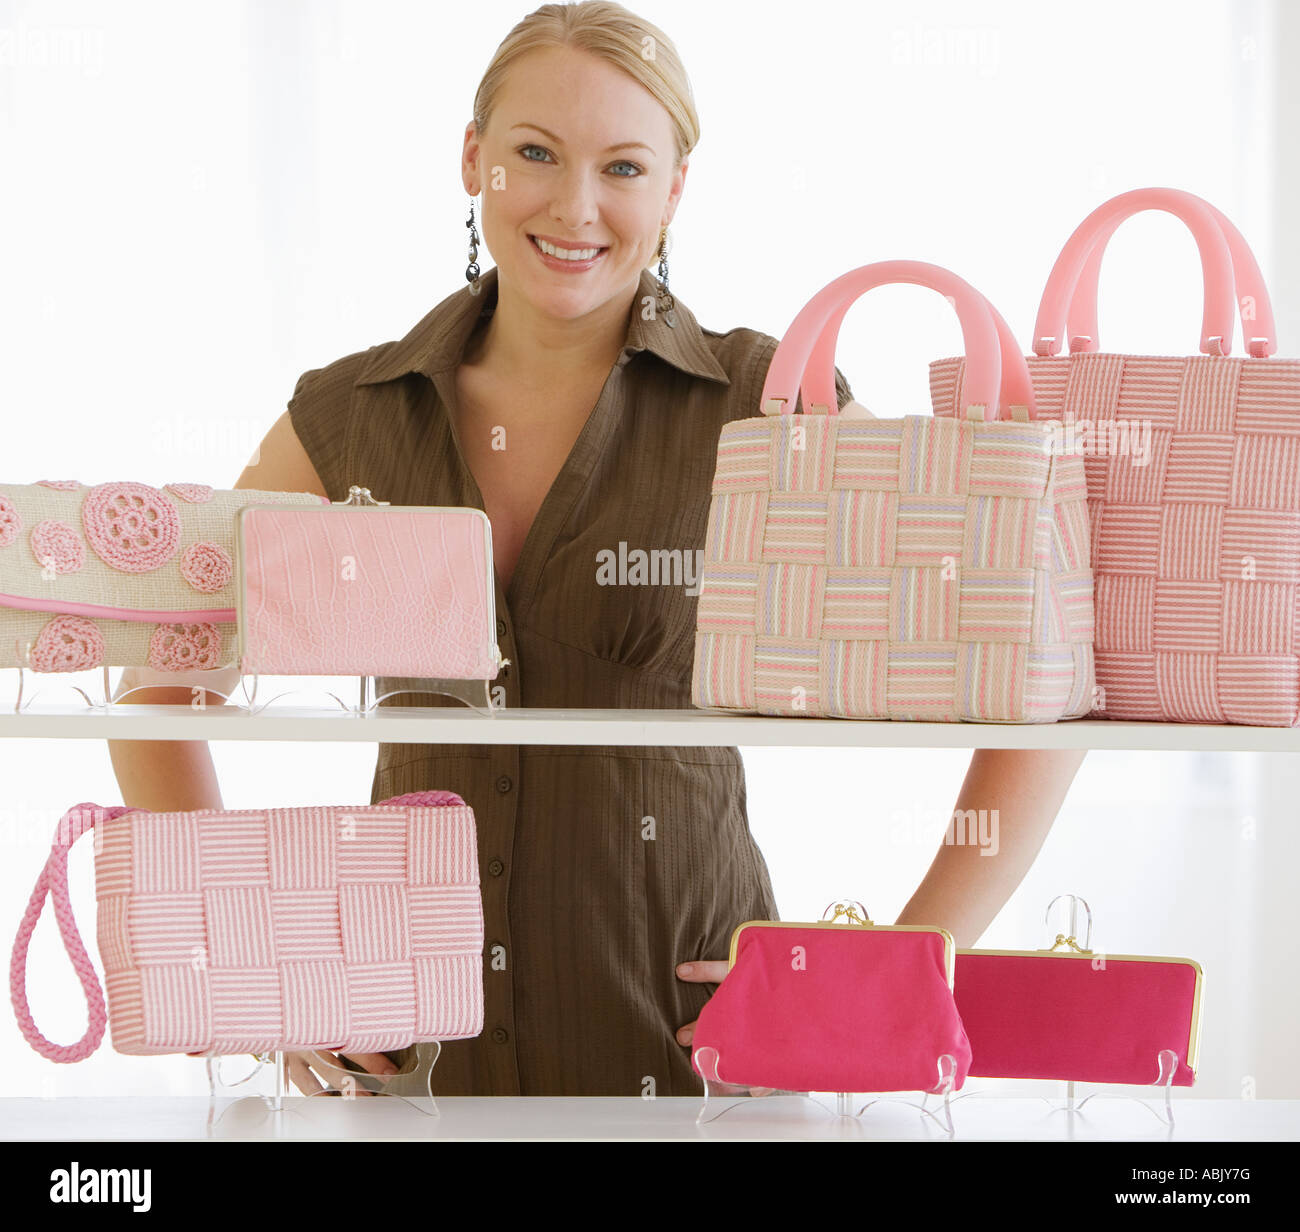 Woman behind shelves of purses Stock Photo